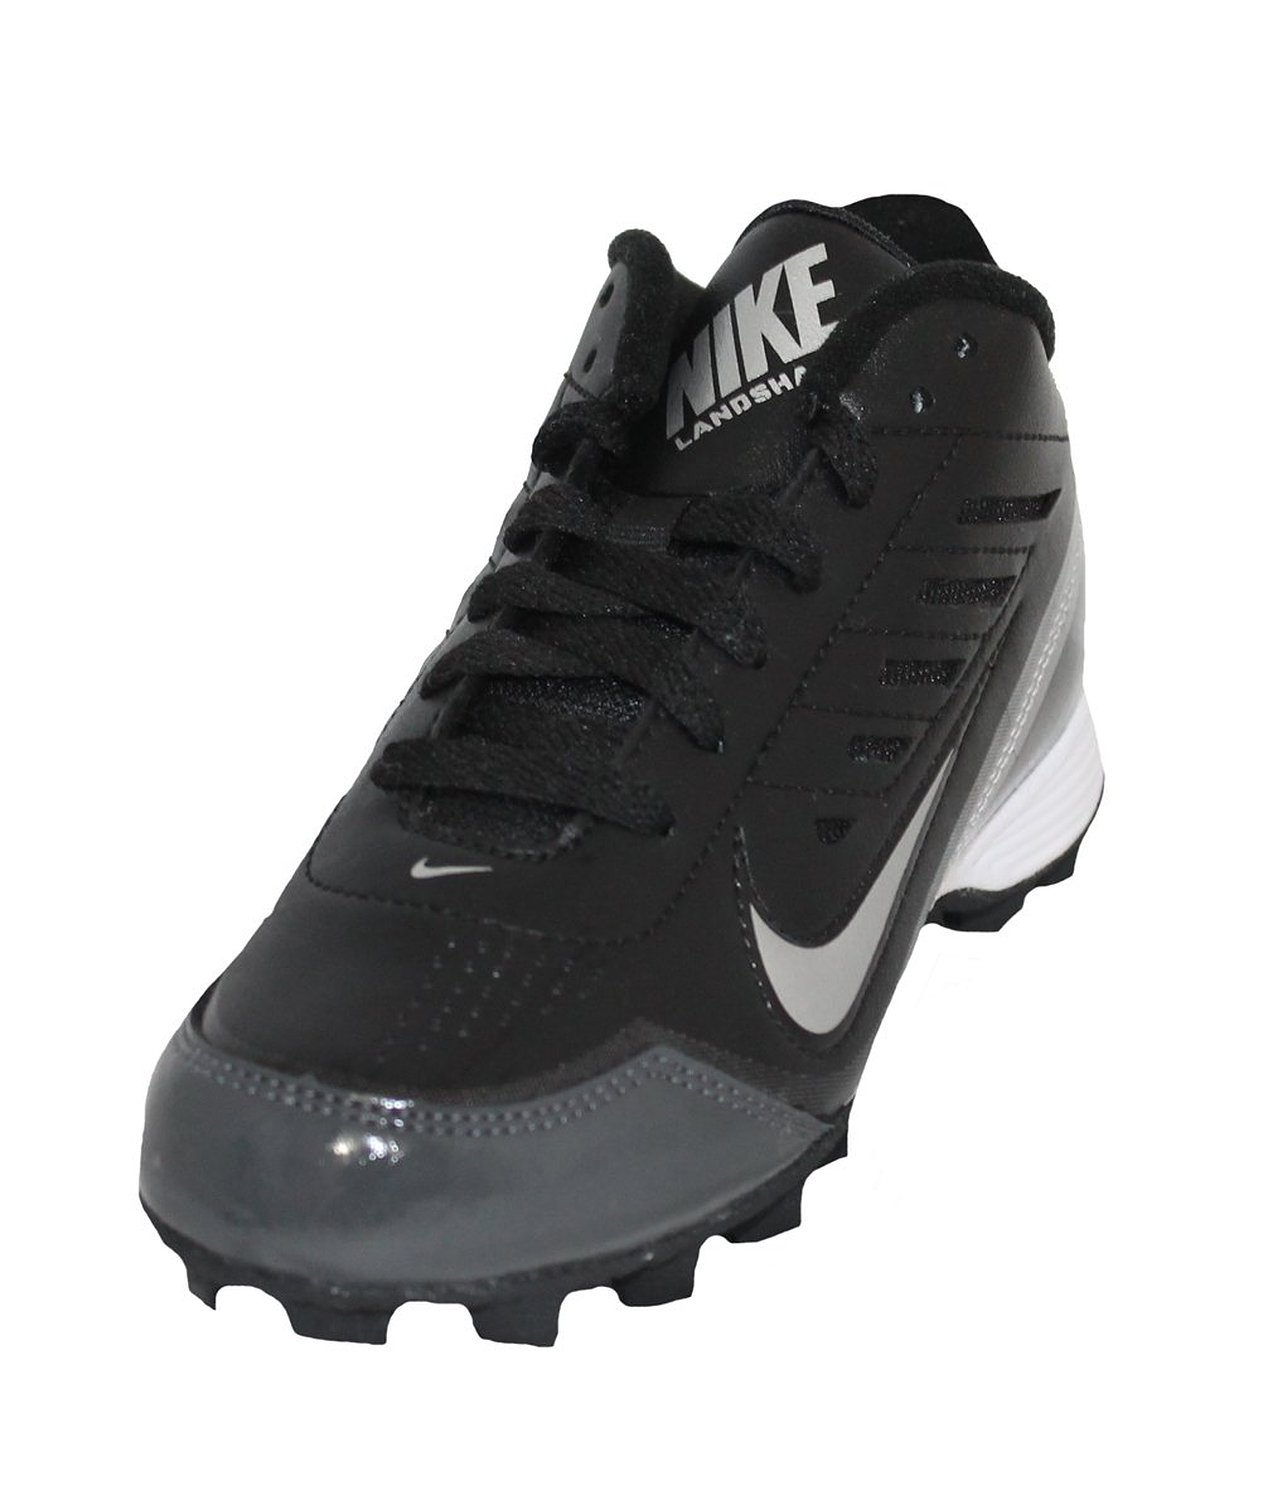 2a7452625 Buy Nike Land Shark 3 4 Wide BG Youth 10c Football Molded Cleat Blk ...